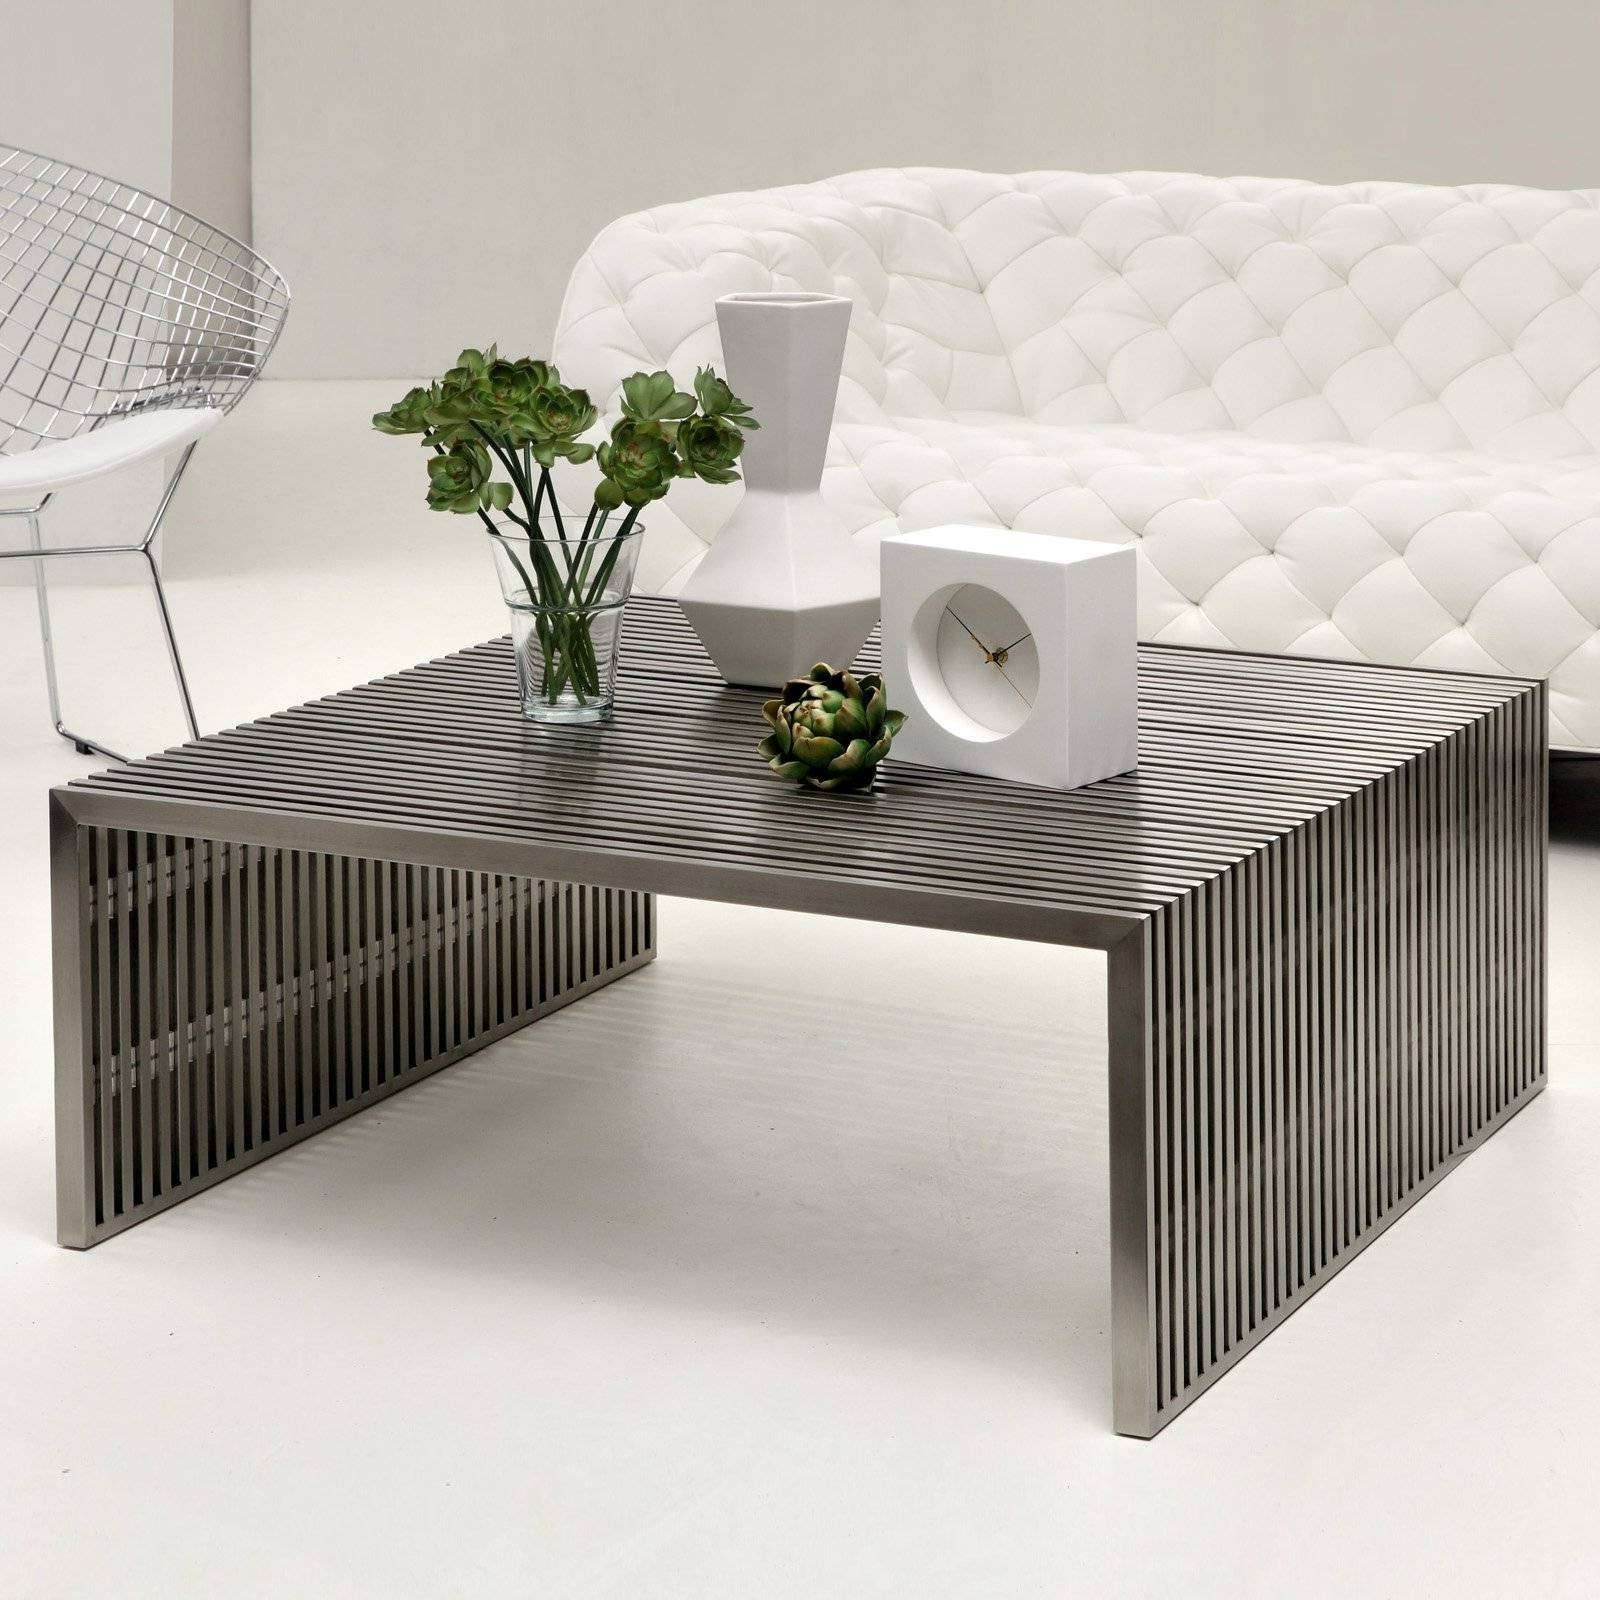 Popular Large Low Square Coffee Tables In Coffee Table : Fabulous Low Square Teak Coffee Table Large Square (View 5 of 20)